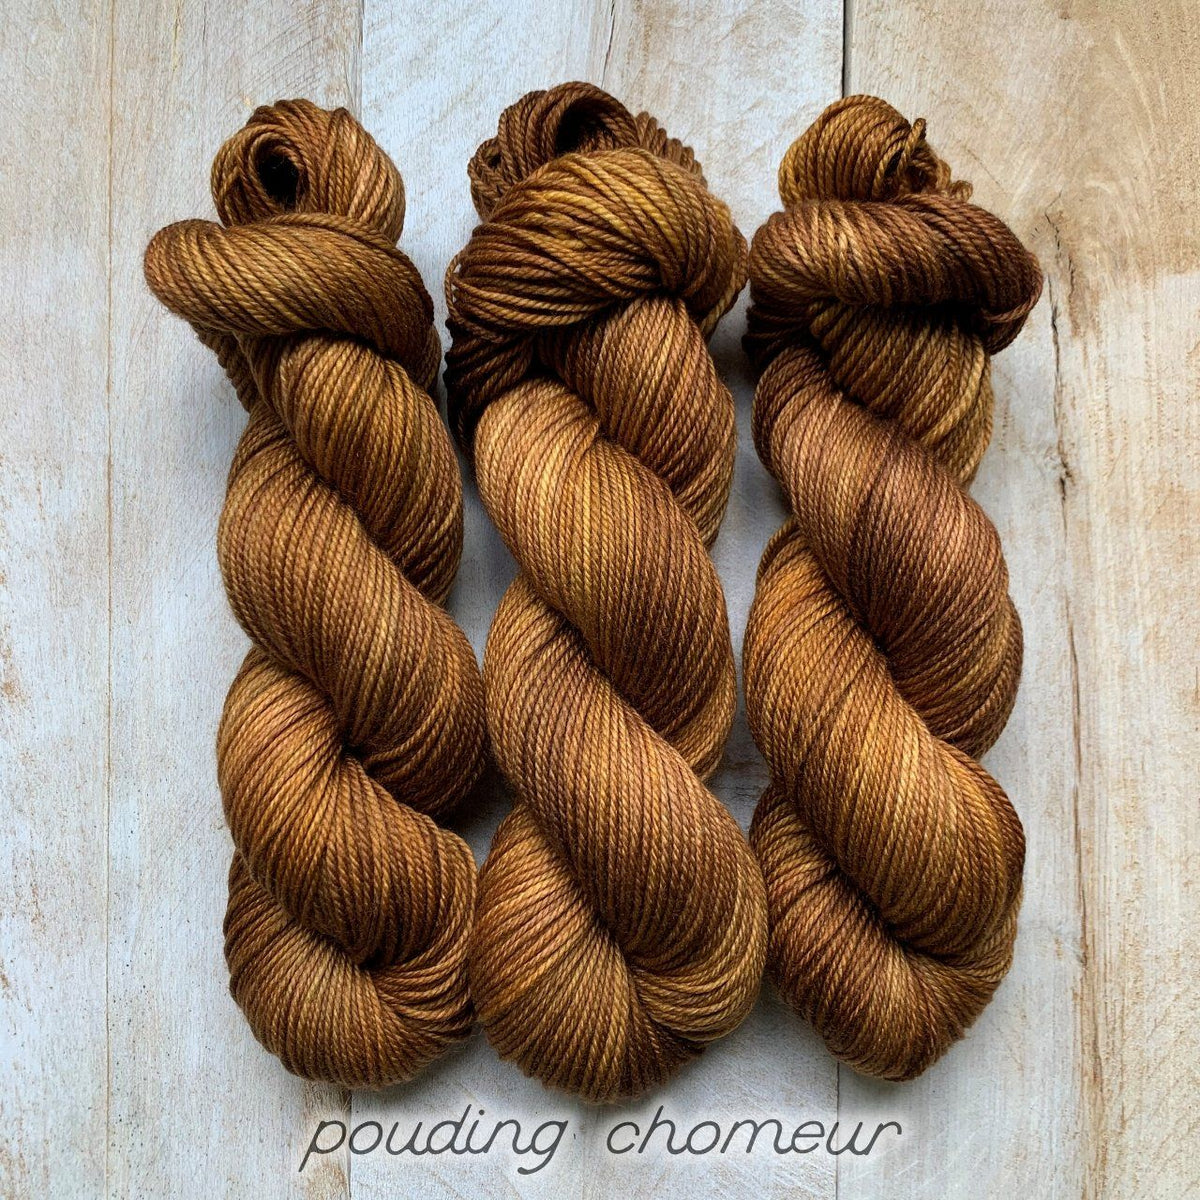 POUDING CHOMEUR by Louise Robert Design | DK PURE hand-dyed semi-solid yarn